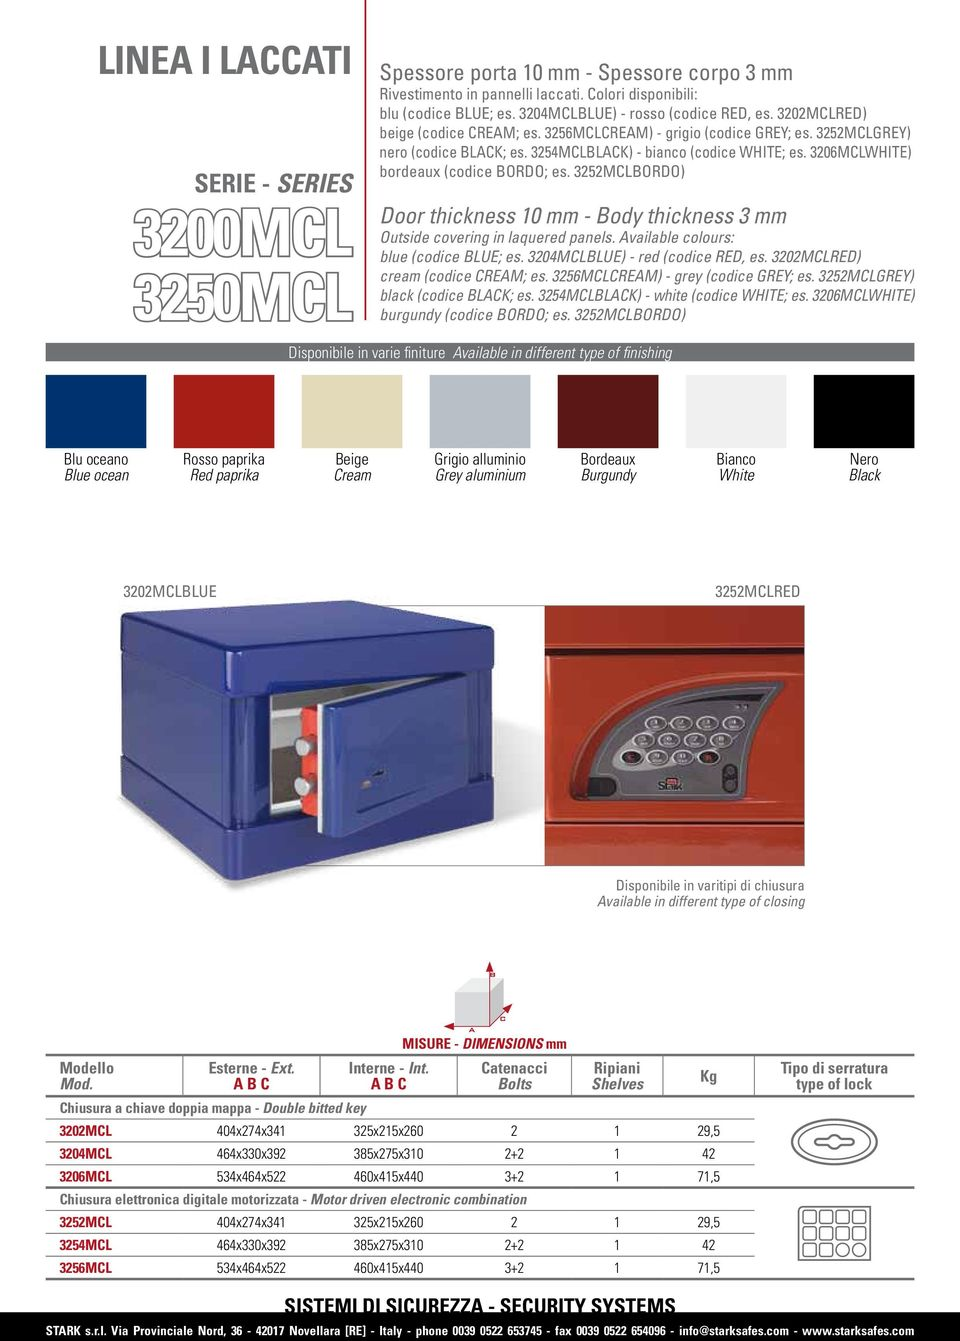 3206MCLWHITE) bordeaux (codice BORDO; es. 3252MCLBORDO) Door thickness 10 mm - Body thickness 3 mm Outside covering in laquered panels. Available colours: blue (codice BLUE; es.